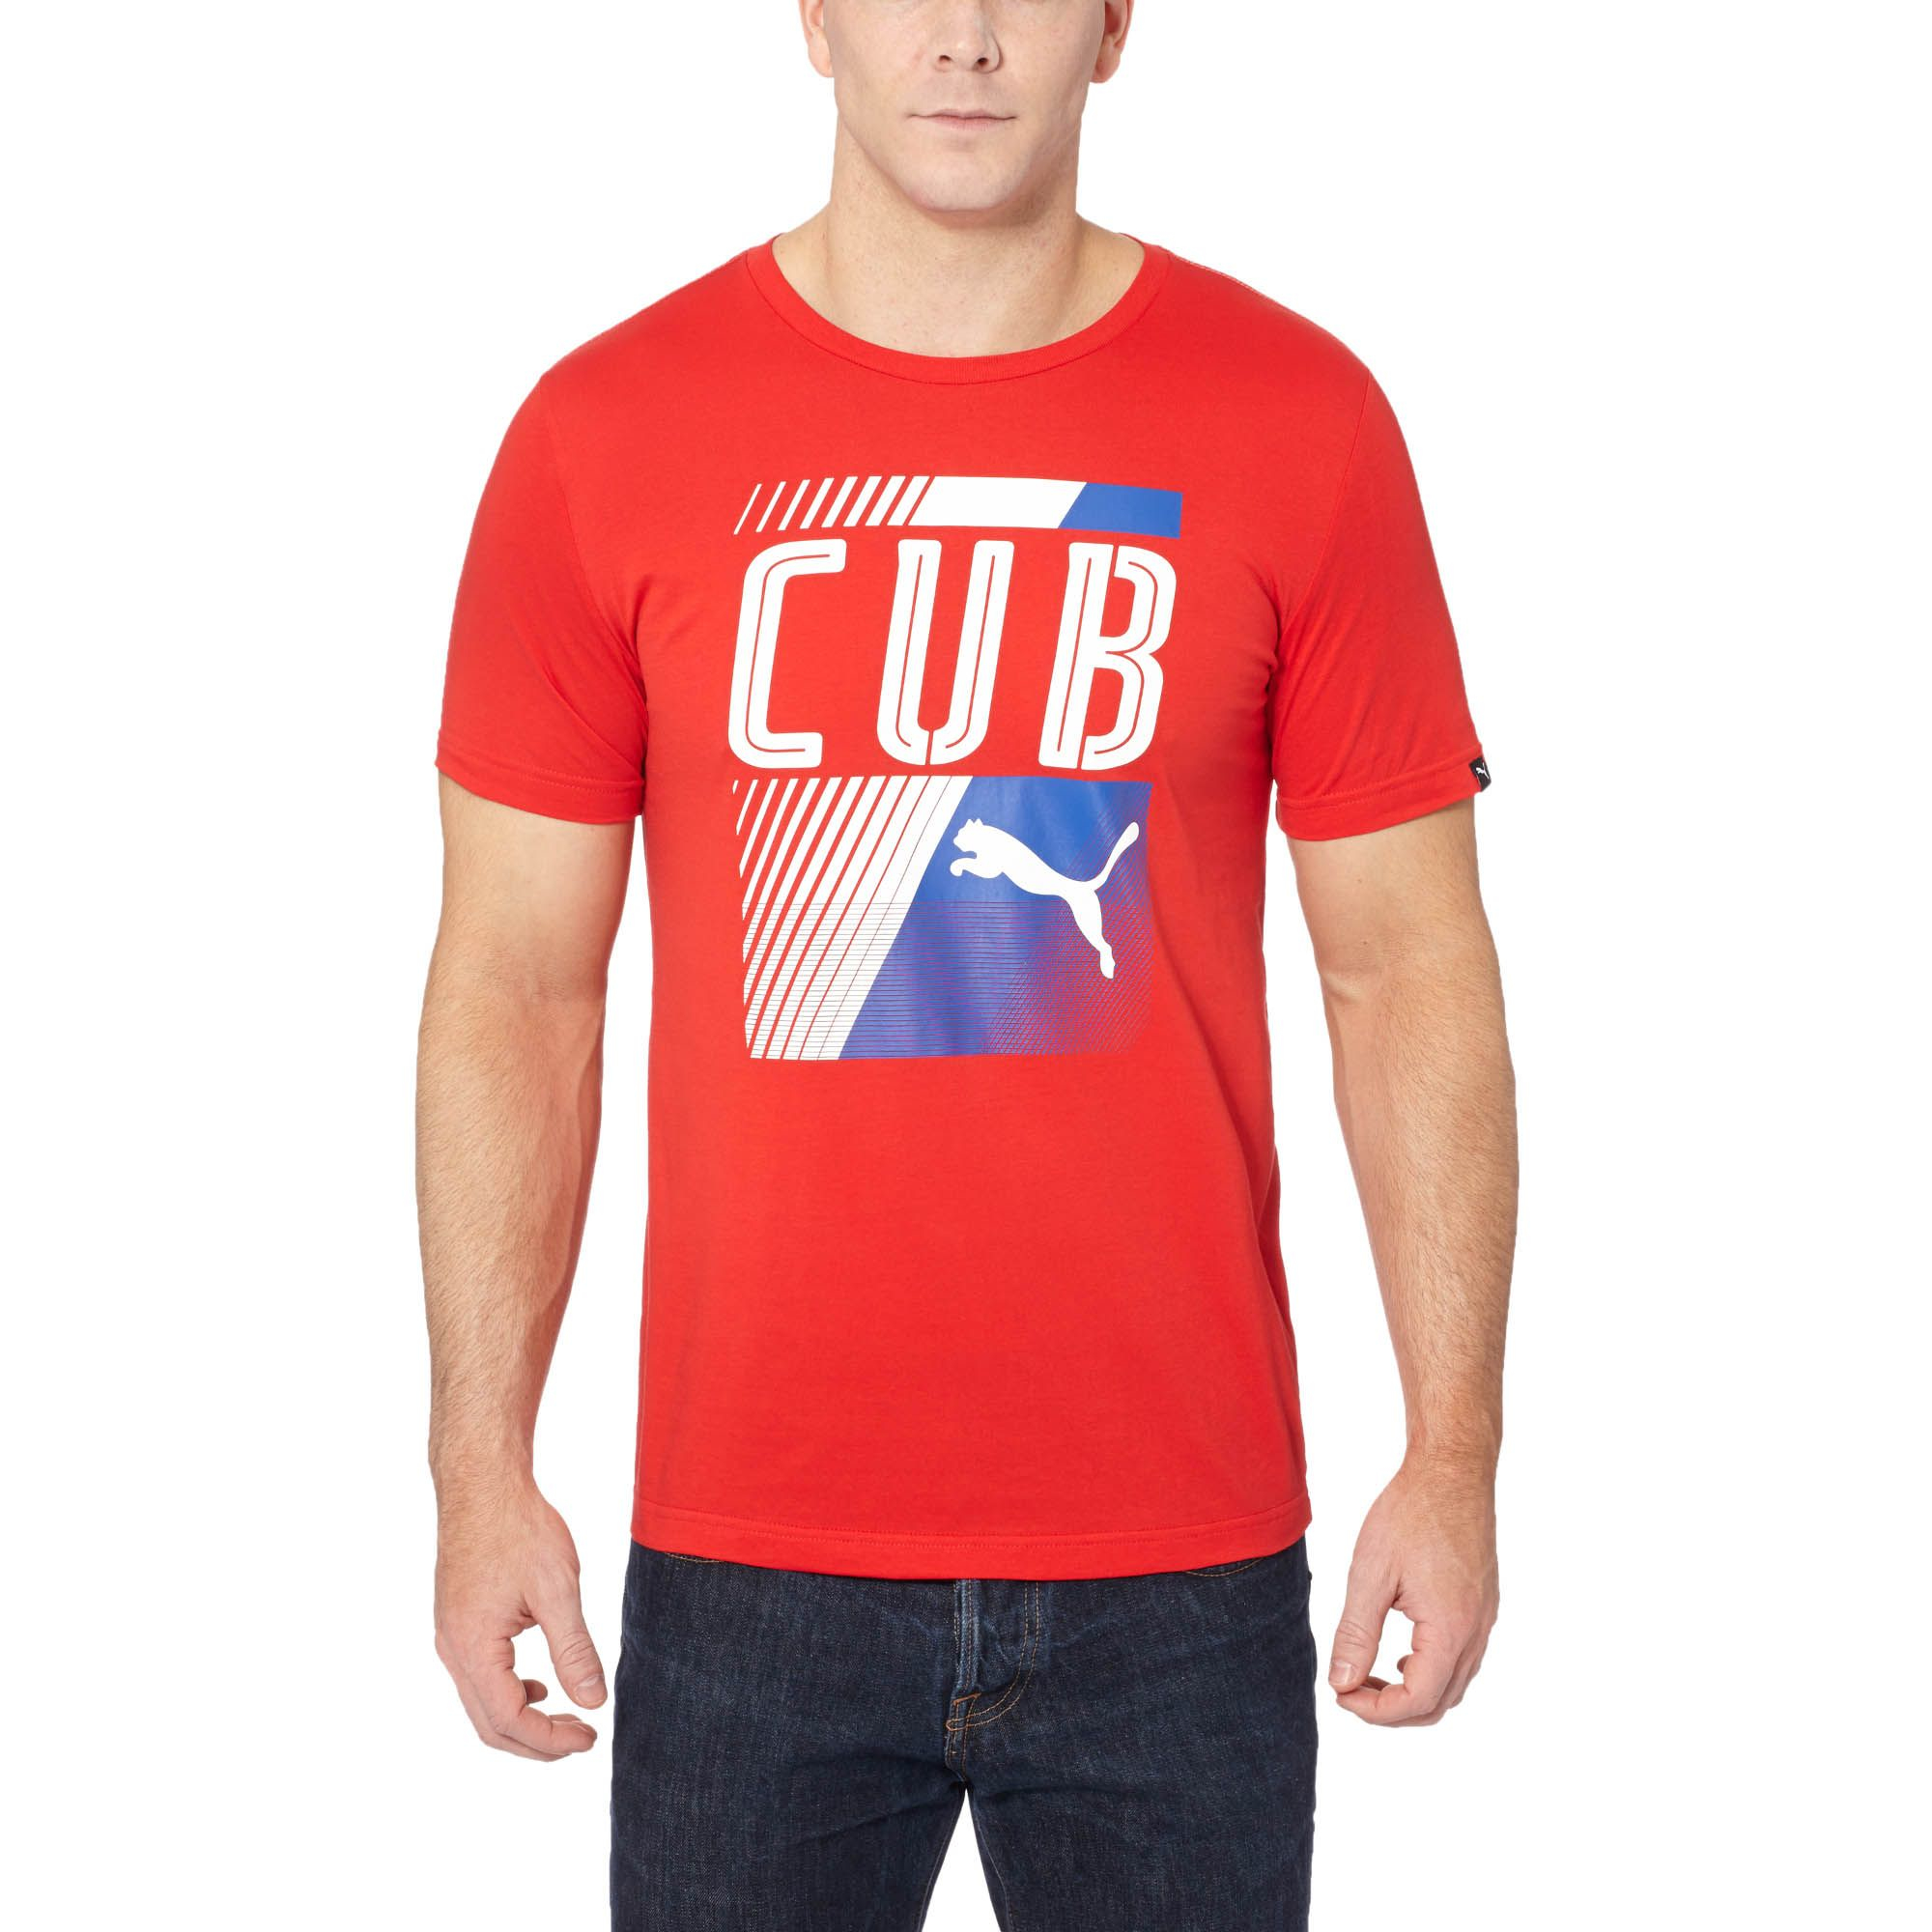 For Shirt Red Men Puma Fan T Cuba AjL45R